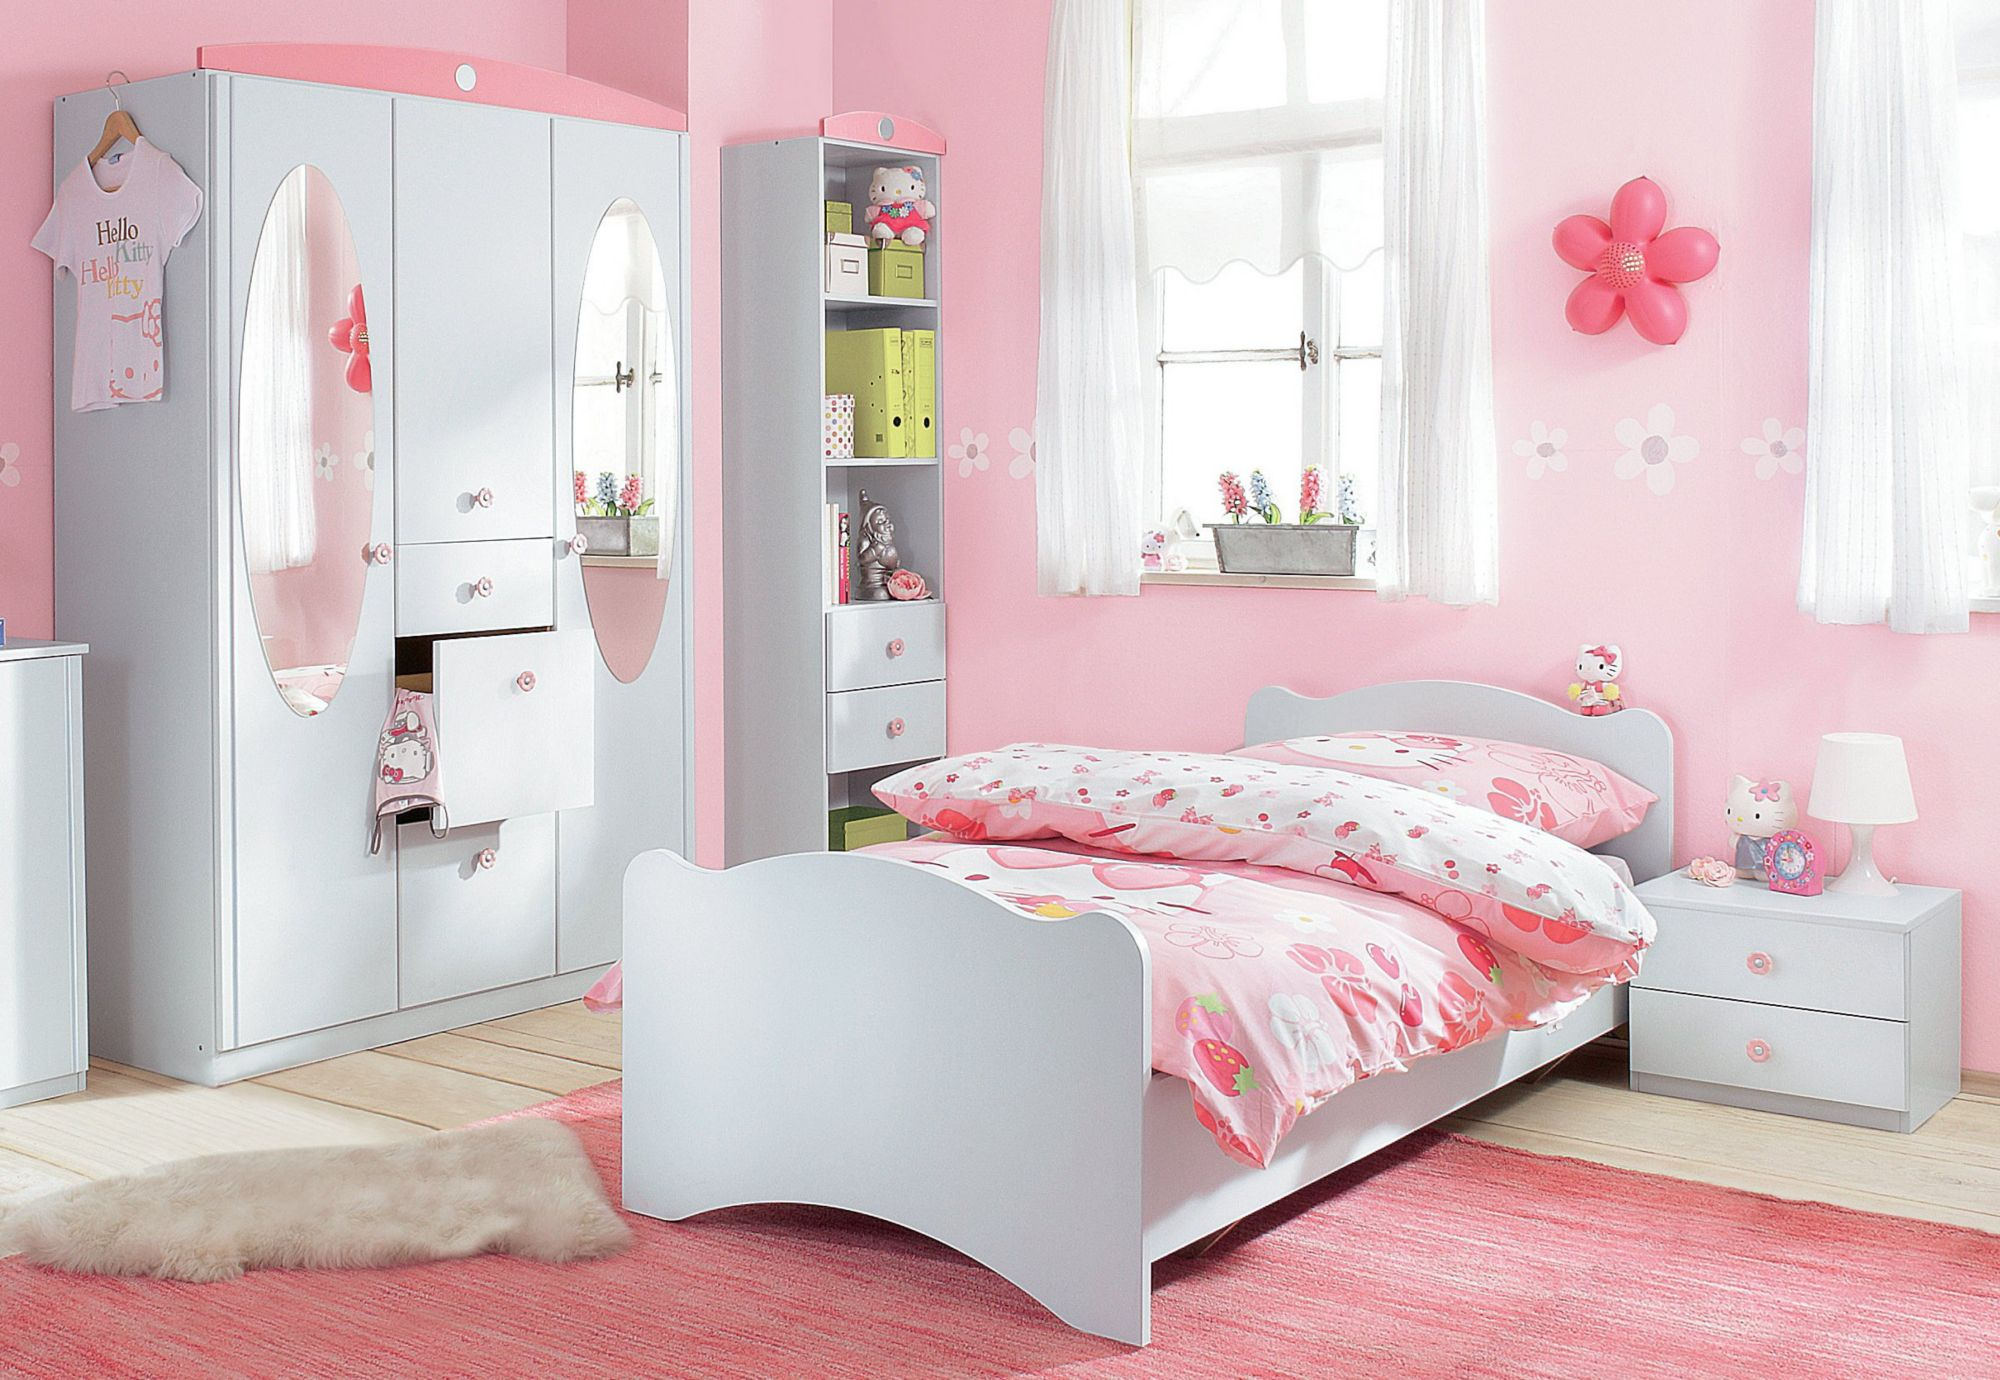 jugendzimmer komplett set guenstig babyzimmer komplett jugendzimmer komplett g nstig kaufen. Black Bedroom Furniture Sets. Home Design Ideas